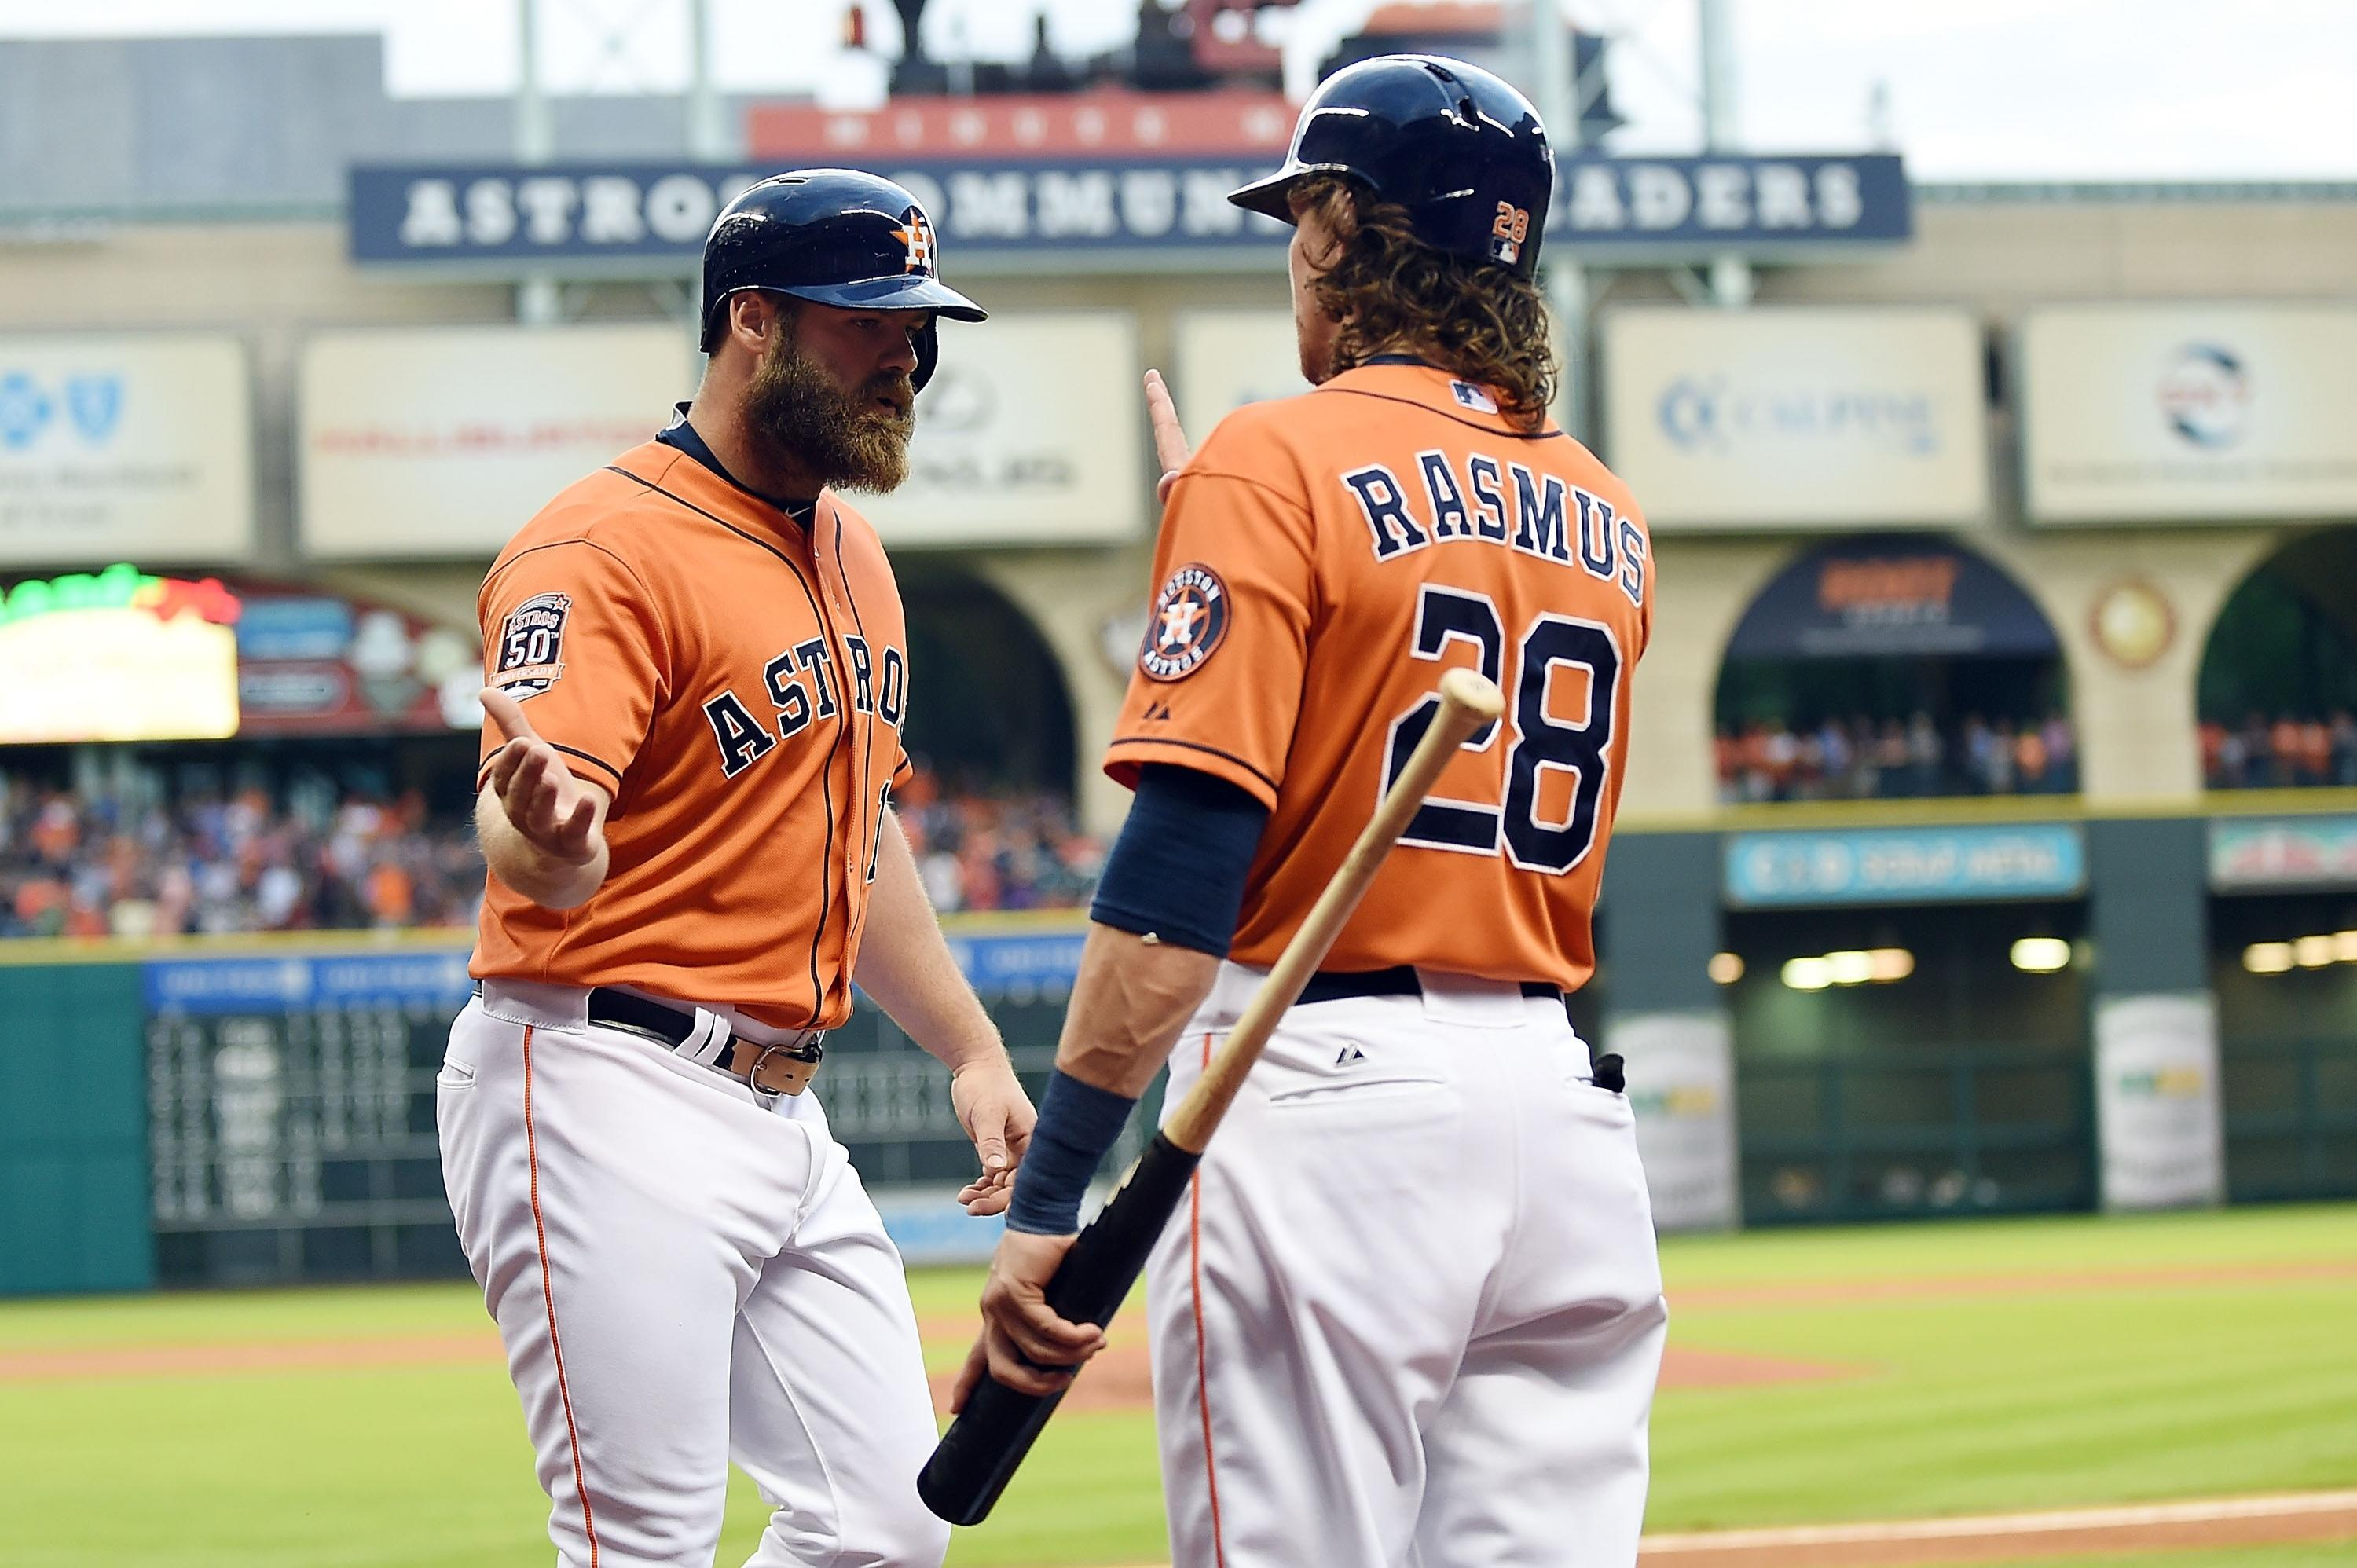 Astros run winning streak to eight, extend division lead to five games